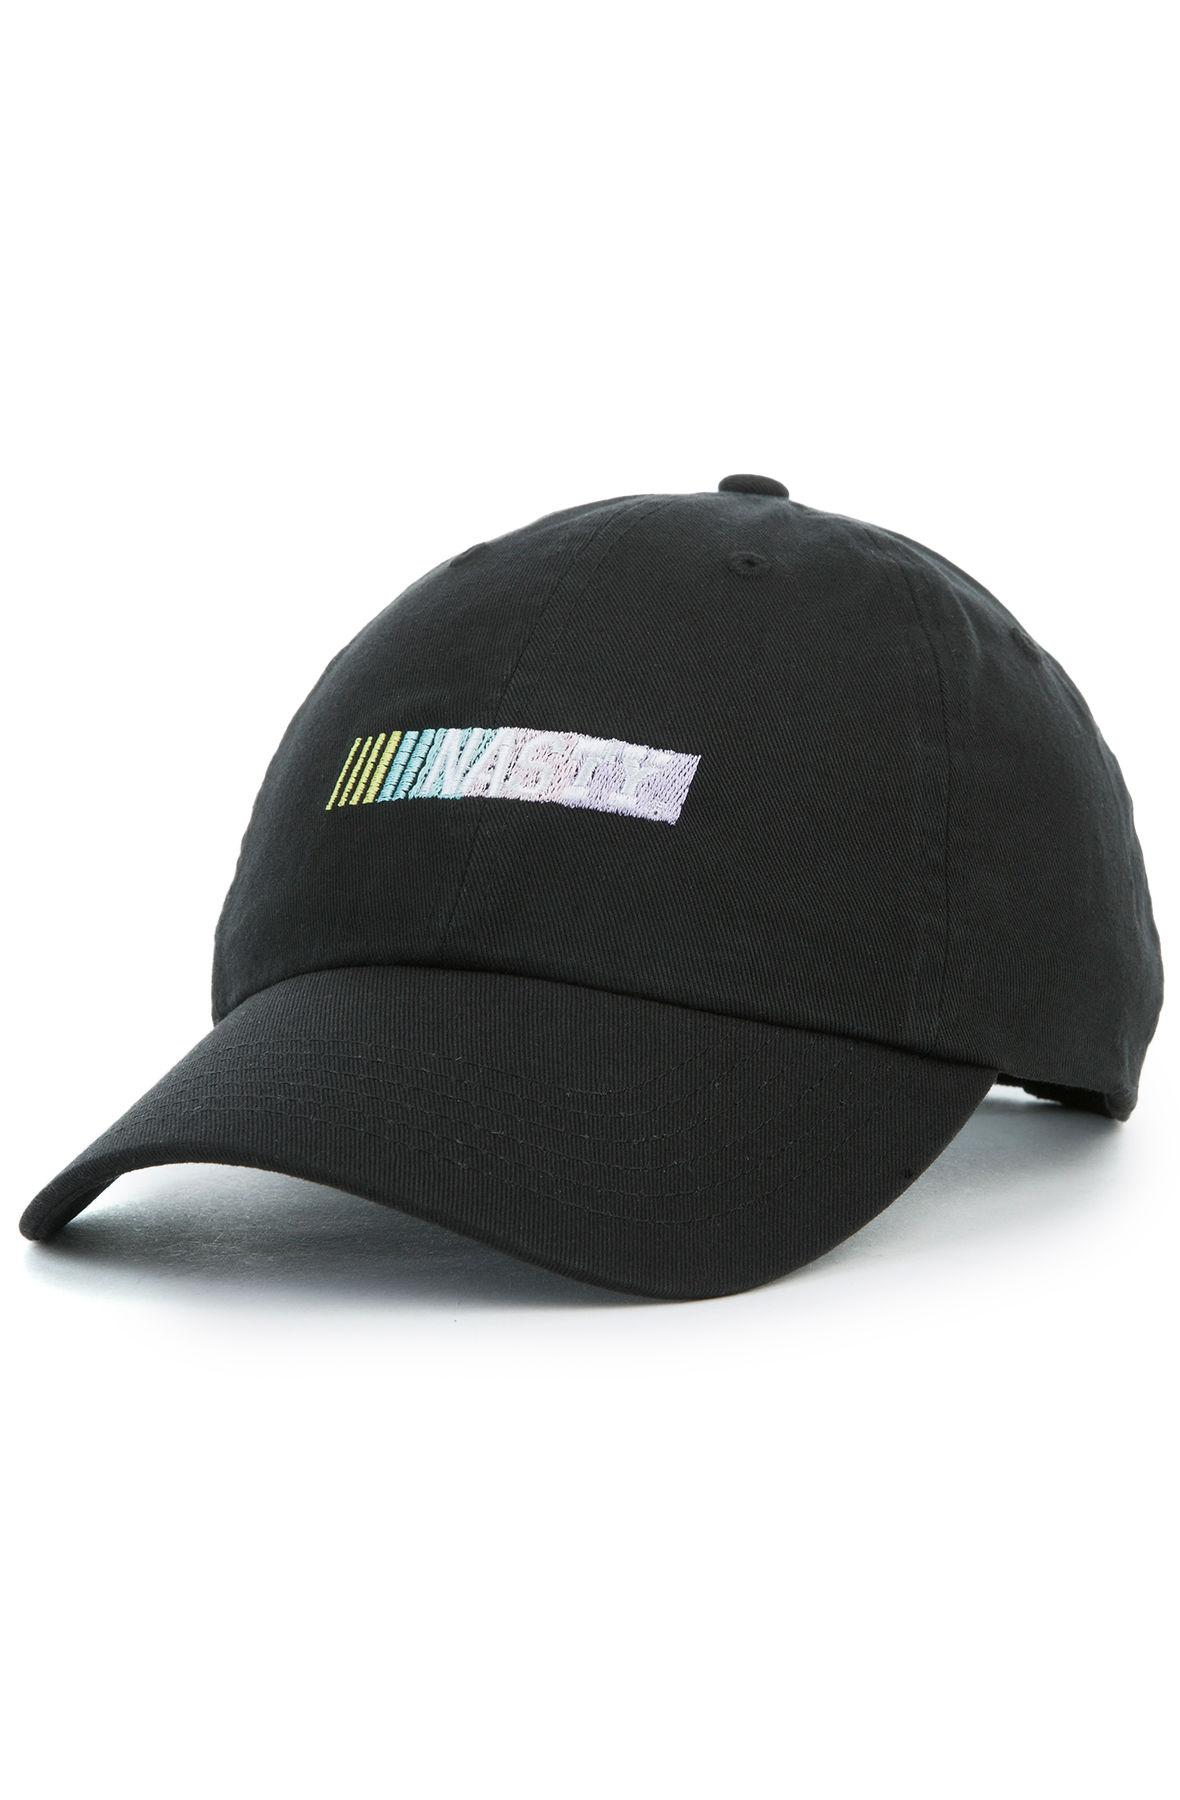 68a22964b6f Lyst - Civil The Nasty Core Strapback Hat in Black for Men